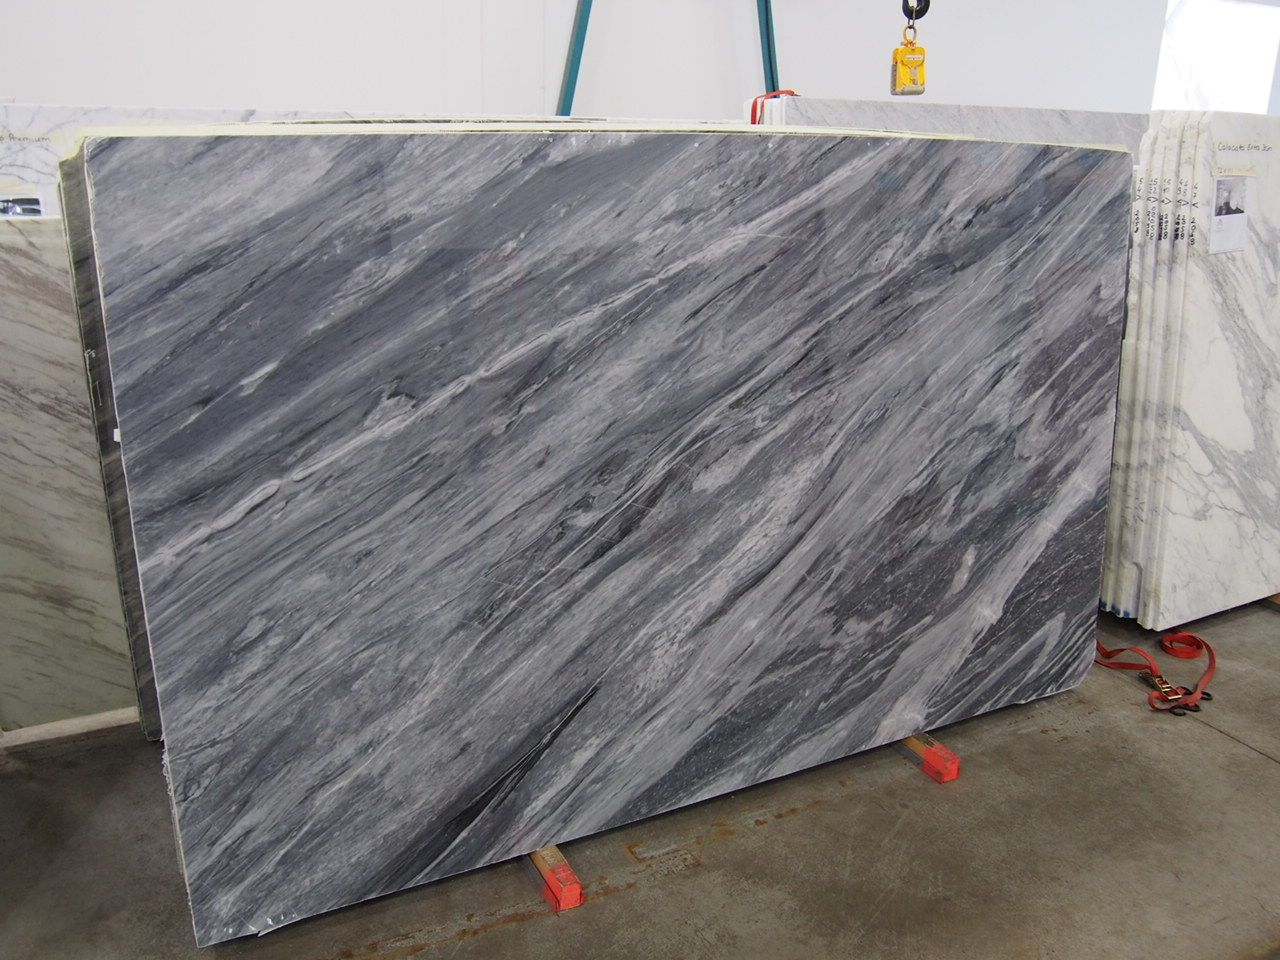 Bardiglio Nuvolato Marble Slab Sold By Milestone Marble Size 117 X 70 X 3 4 Inches Stone Slab Marble Slab Stone Tiles